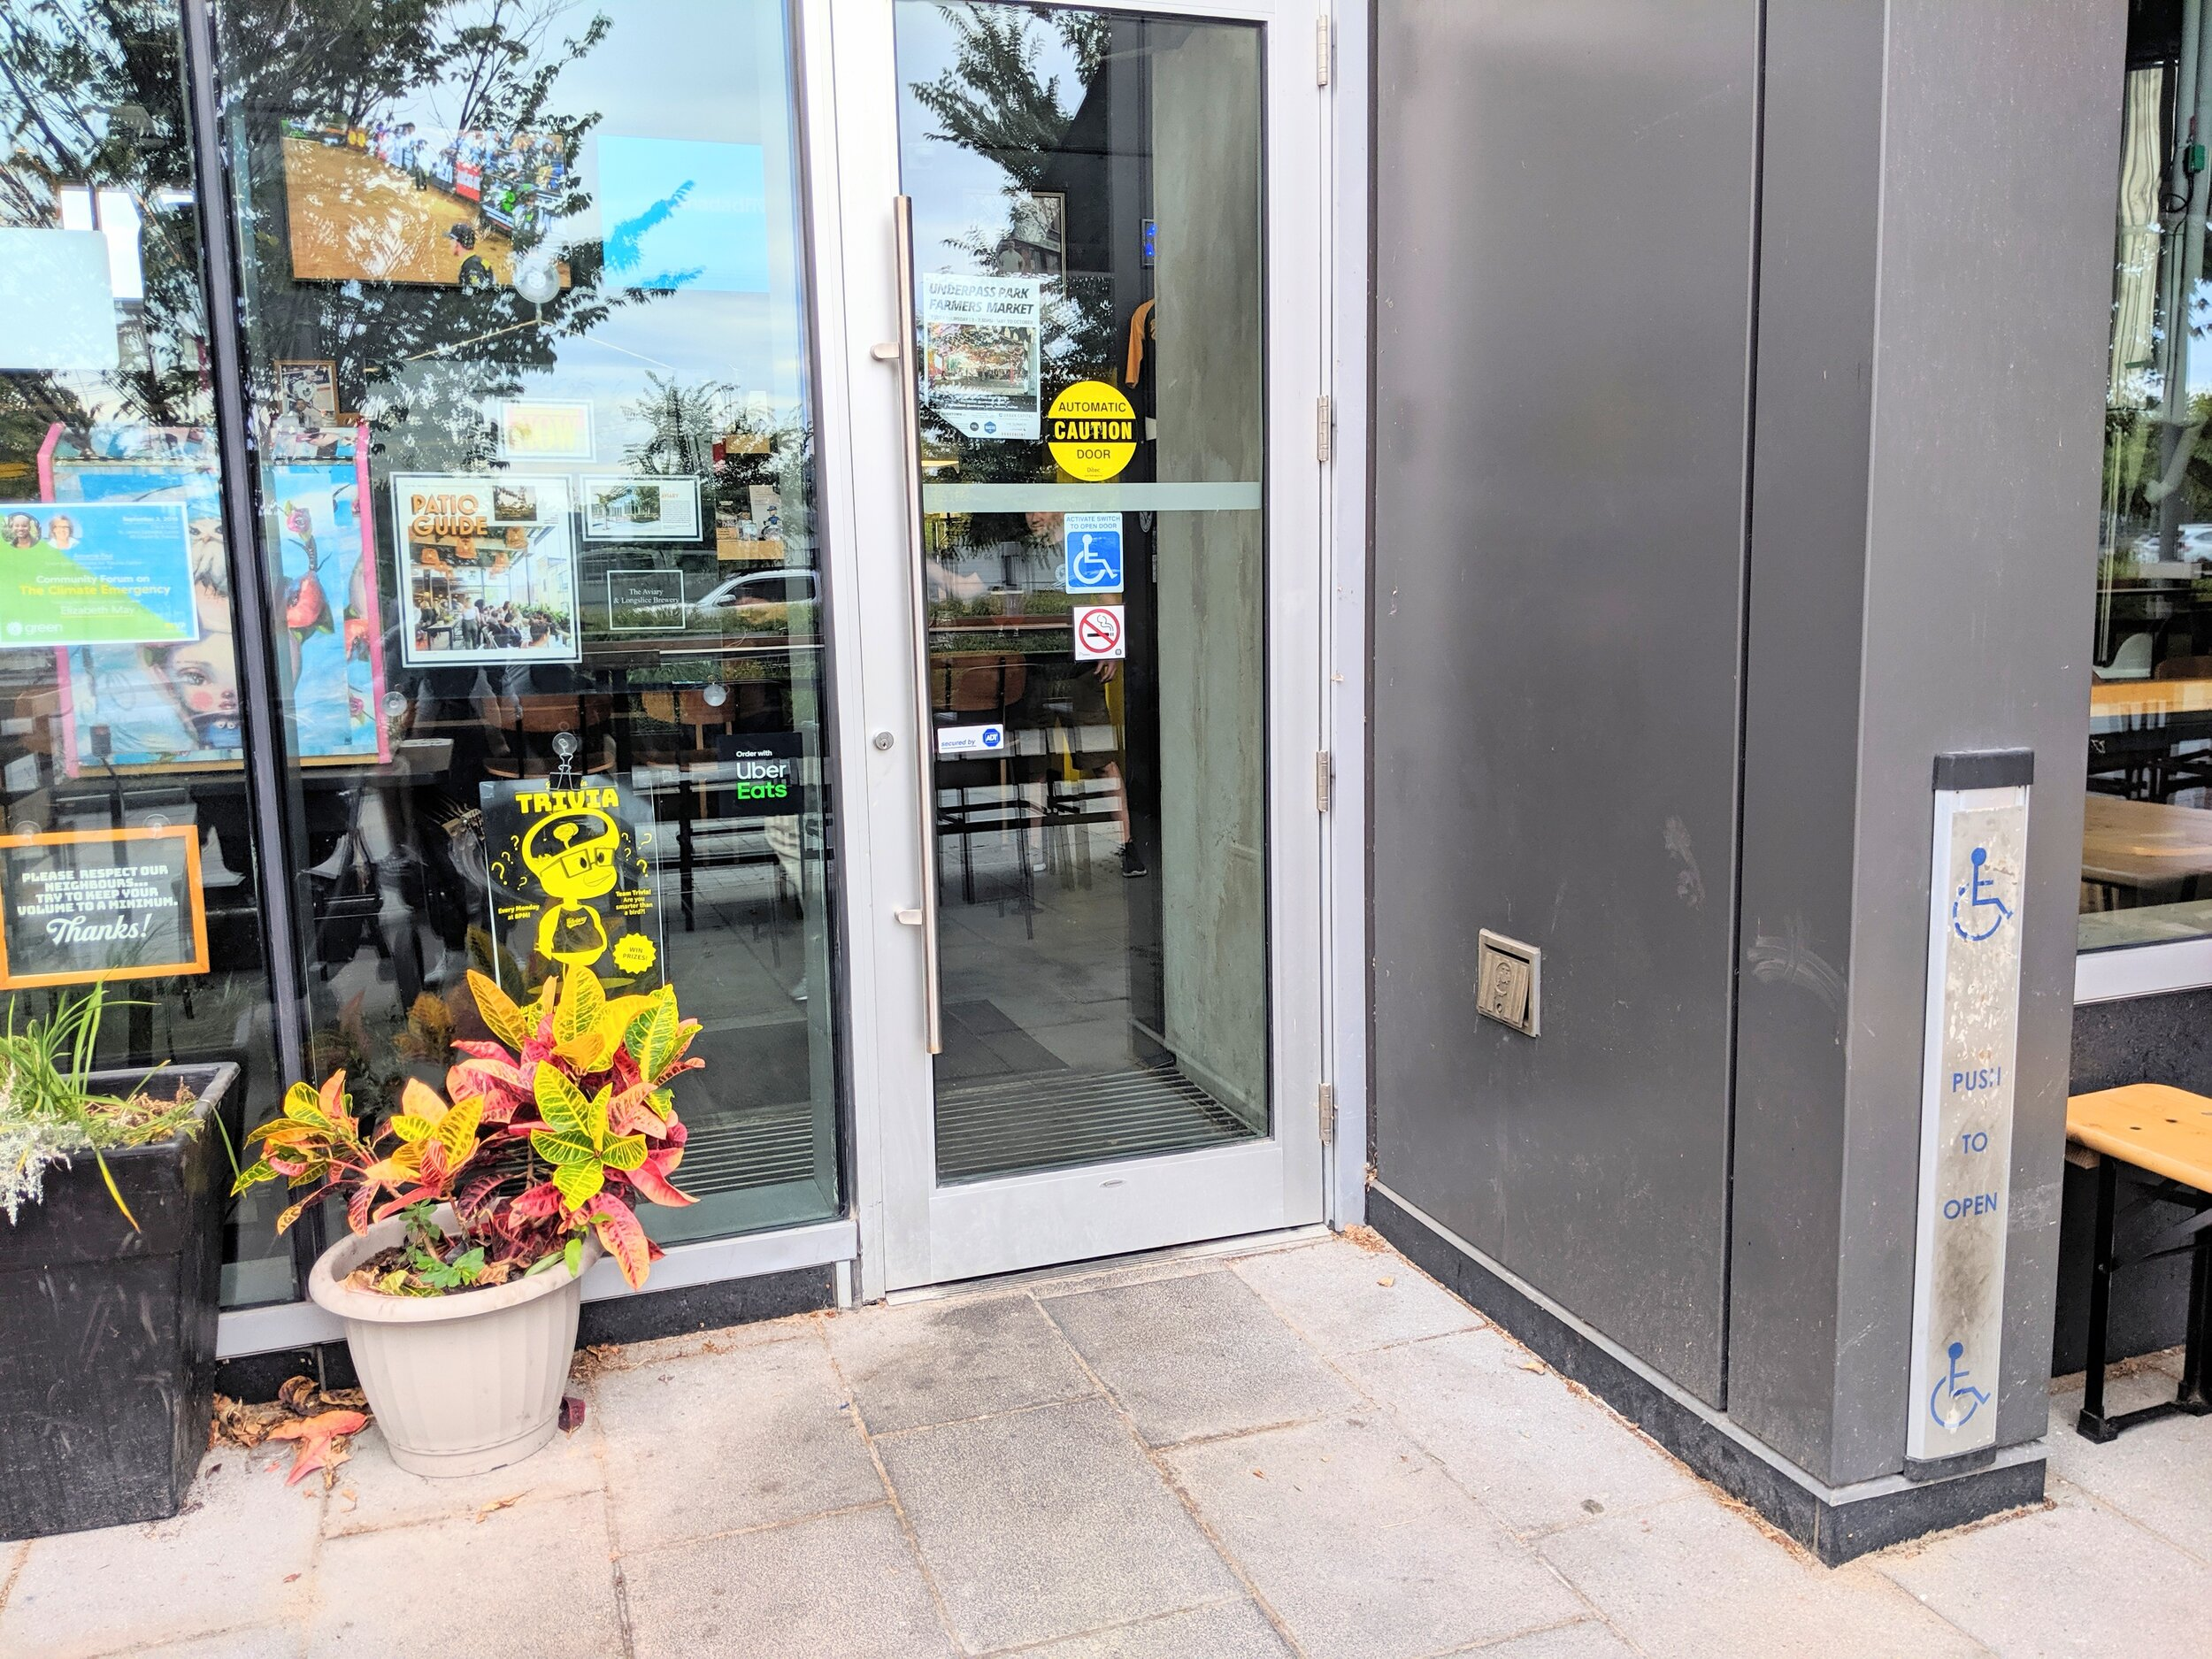 Picture of the accessible entrance at the Aviary